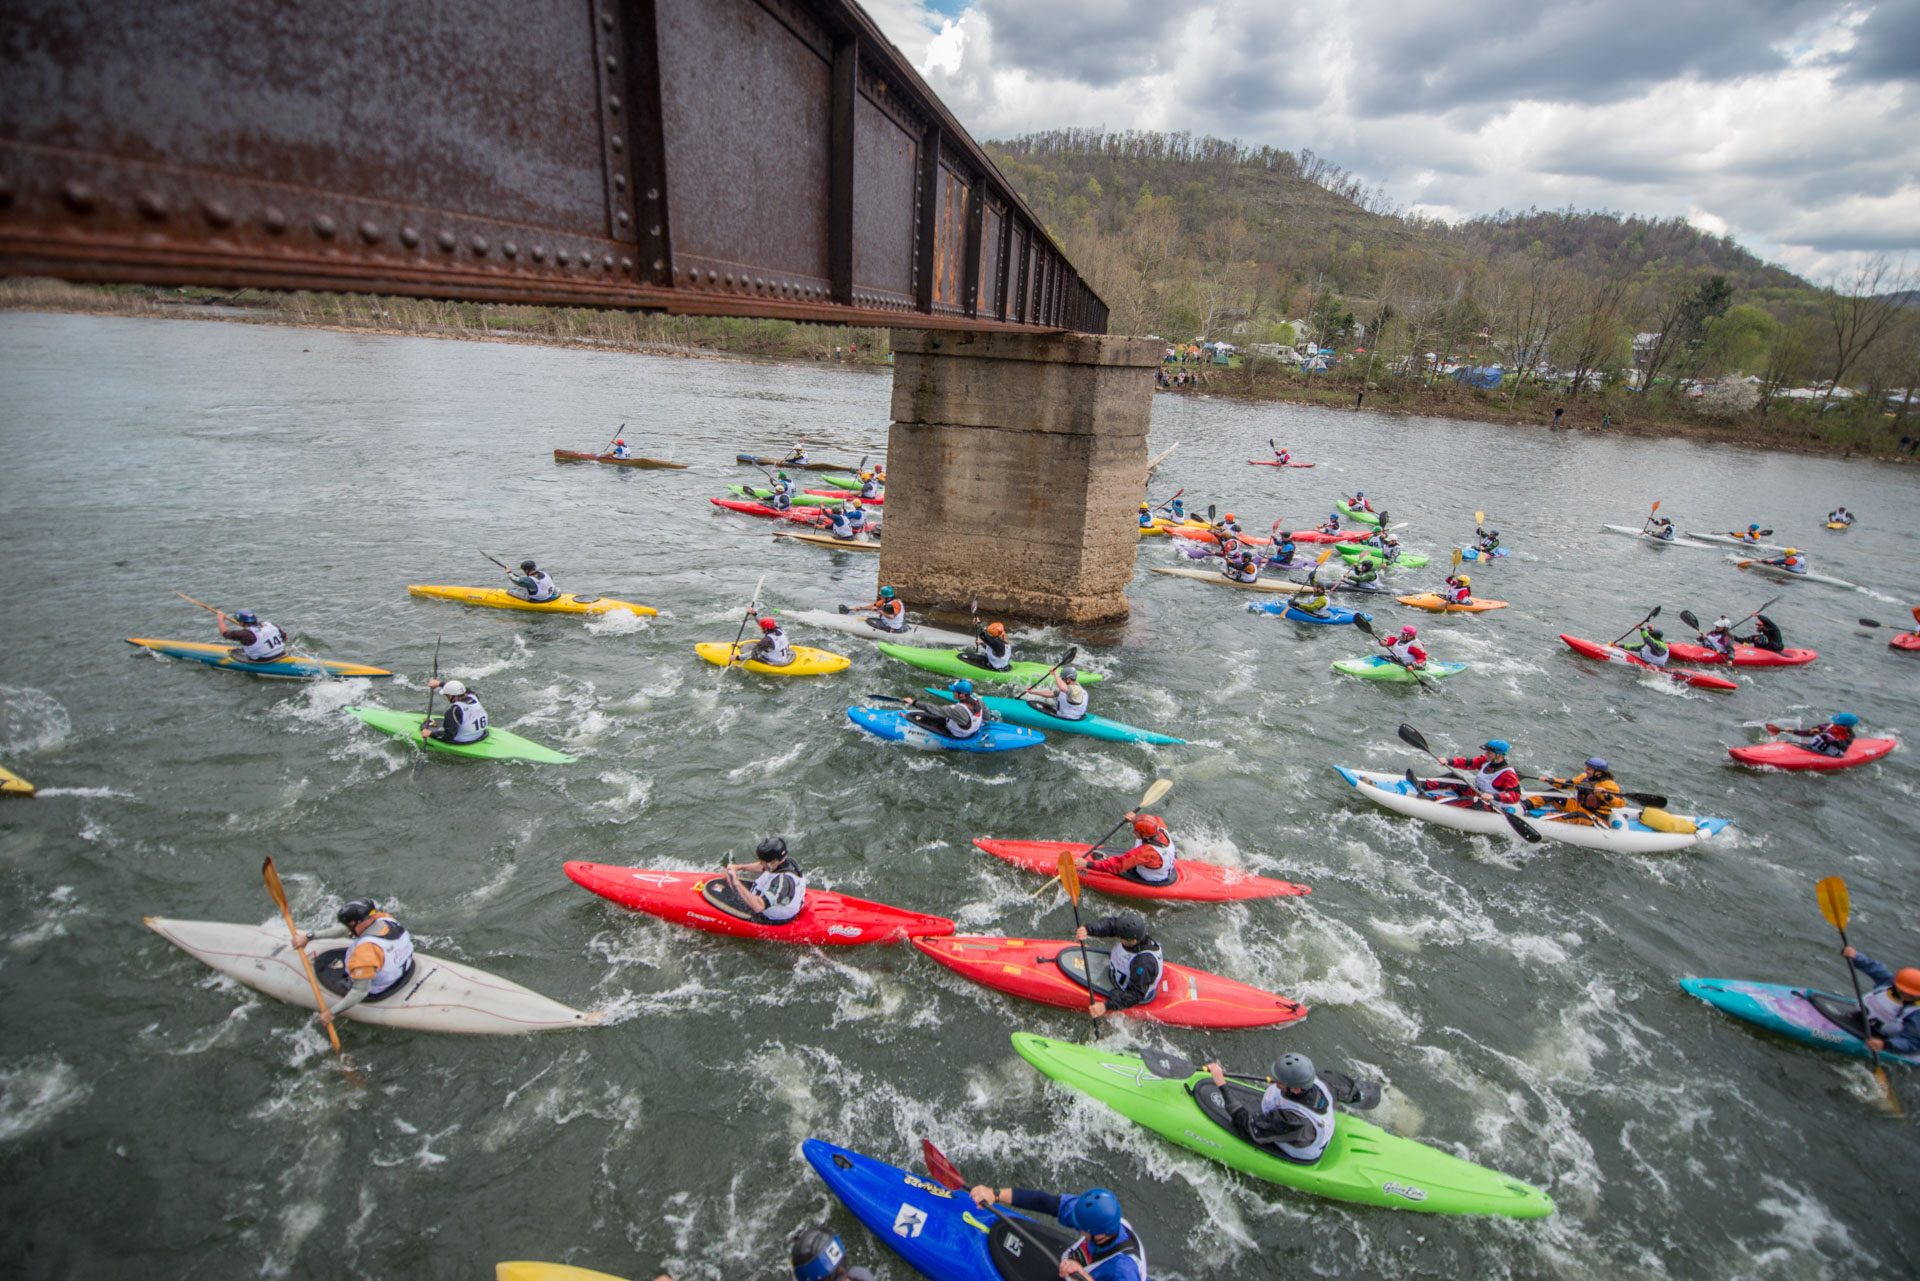 Albright, Allegheny Trail, Cheat Fest, Cheat River, Cheat River Festival, Events, Friends of the Cheat, Gabe DeWitt, Places, TNC, The Nature Conservancy, The Nature Conservancy Magazine, West Virginia, photo by Gabe DeWitt, spring